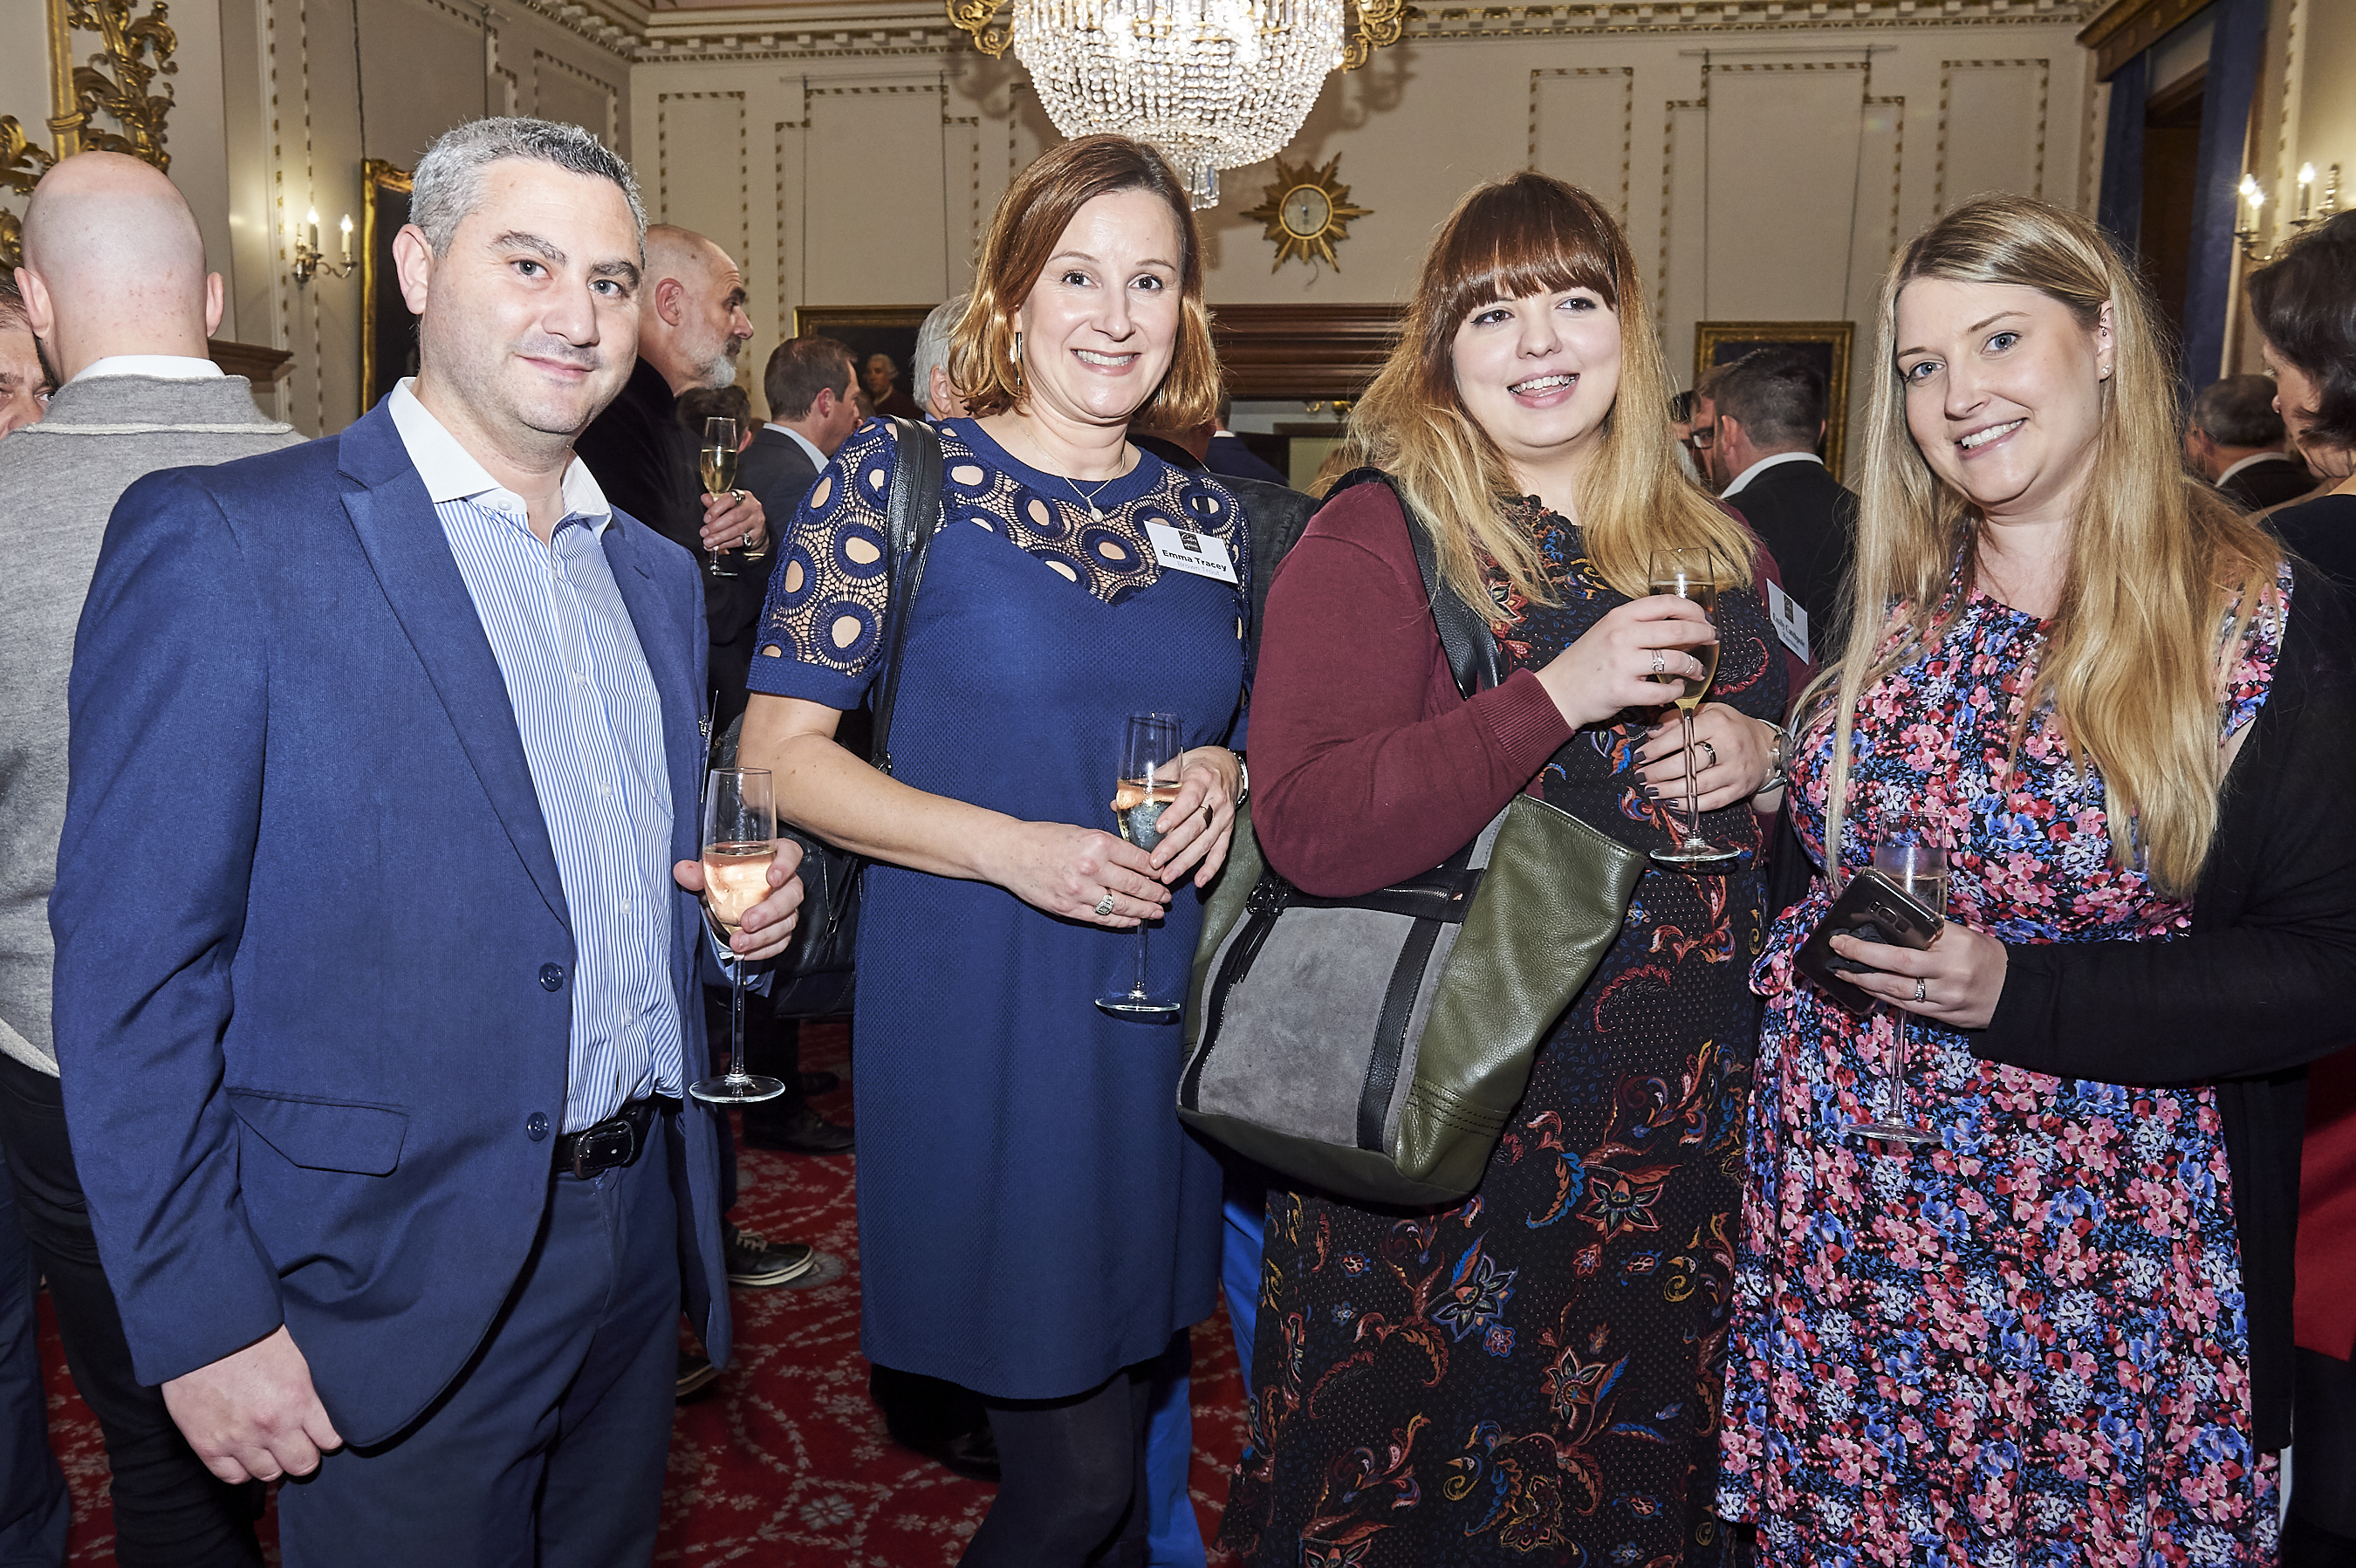 Above: (far left) Daniel Prince, md of Danilo caught up with Waterstones' buyers (far right, second right) Claire Quinn and Emily Catchpole and BrownTrout's Emma Tracey at The Calies last week (November 28).